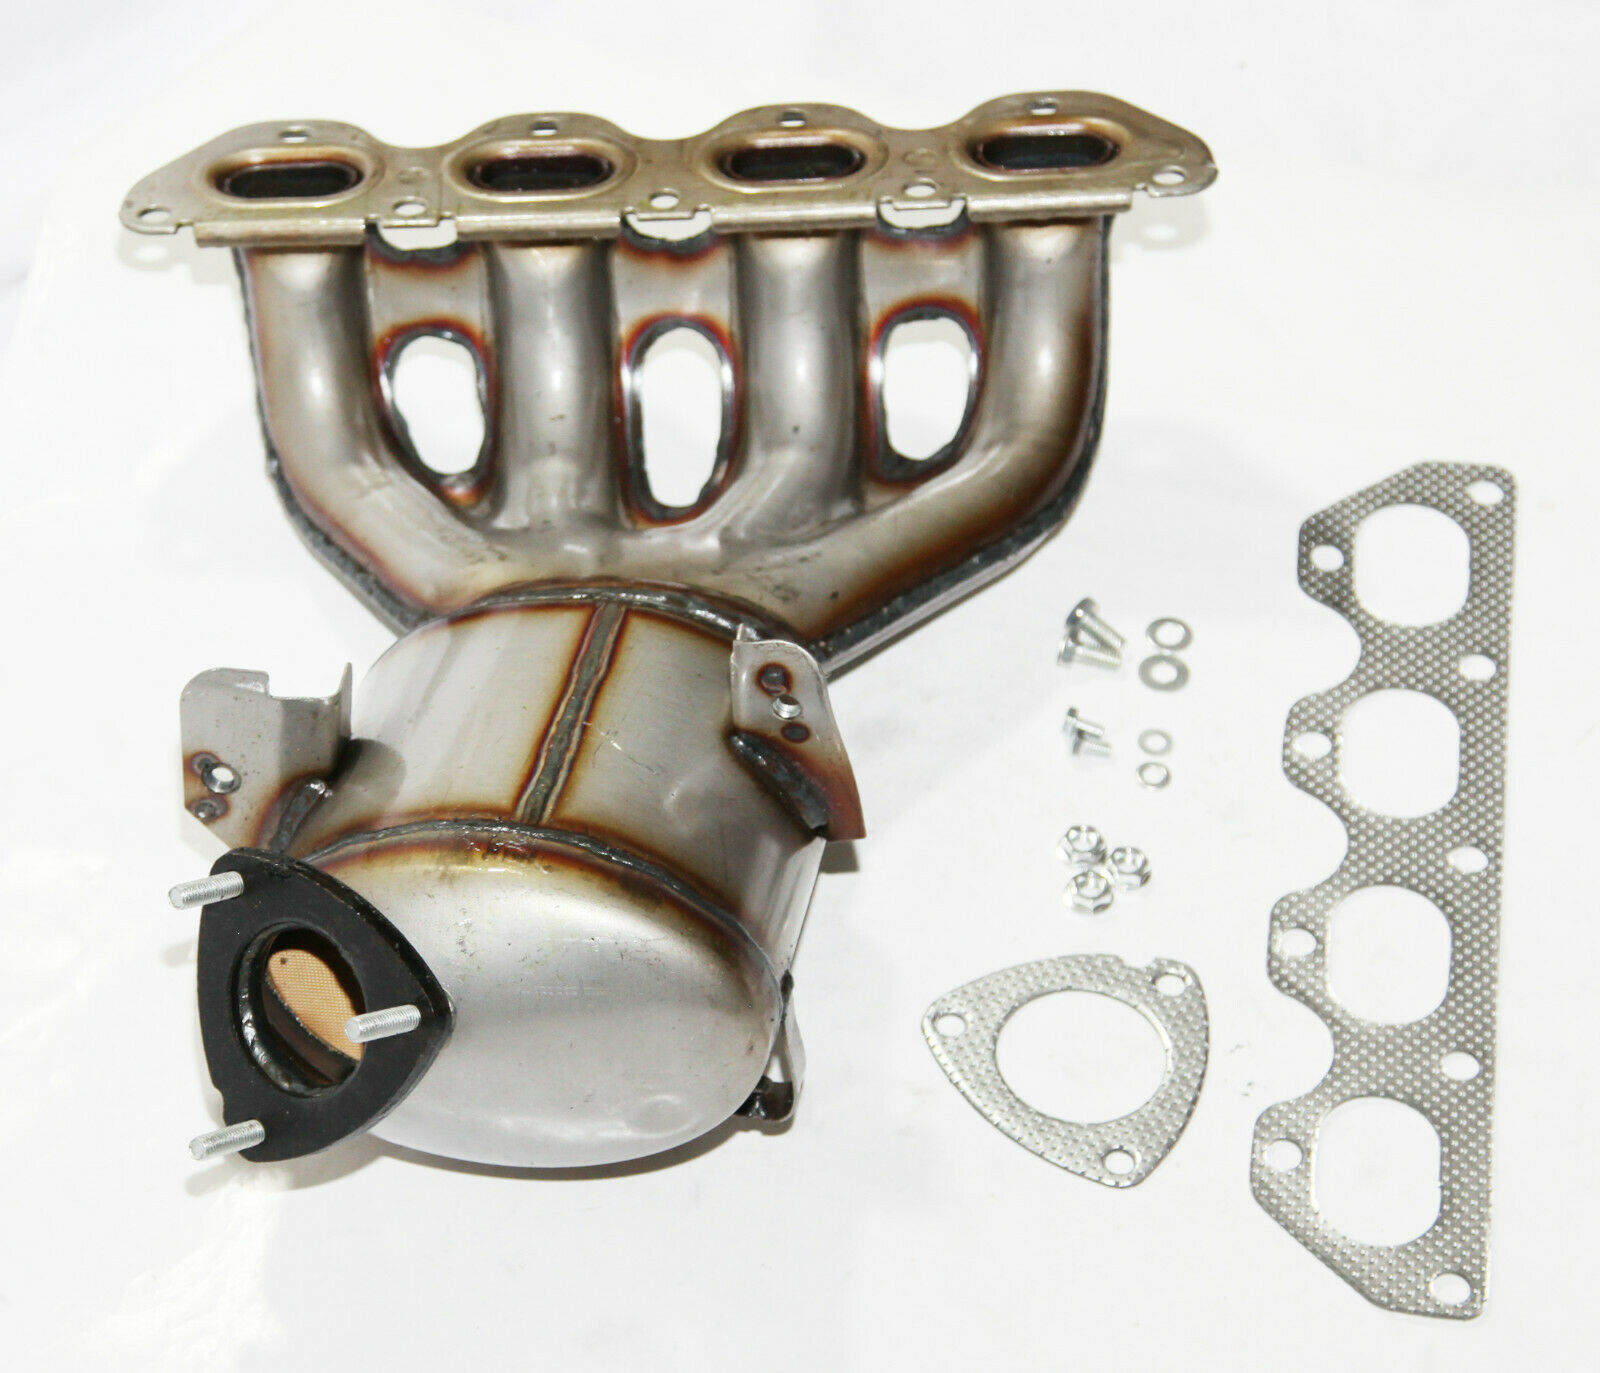 exhaust manifold catalytic converter fit 11 16 chevy cruze sonic trax 674 841 exhaust manifold catalytic converter fit 11 16 chevy cruze sonic trax